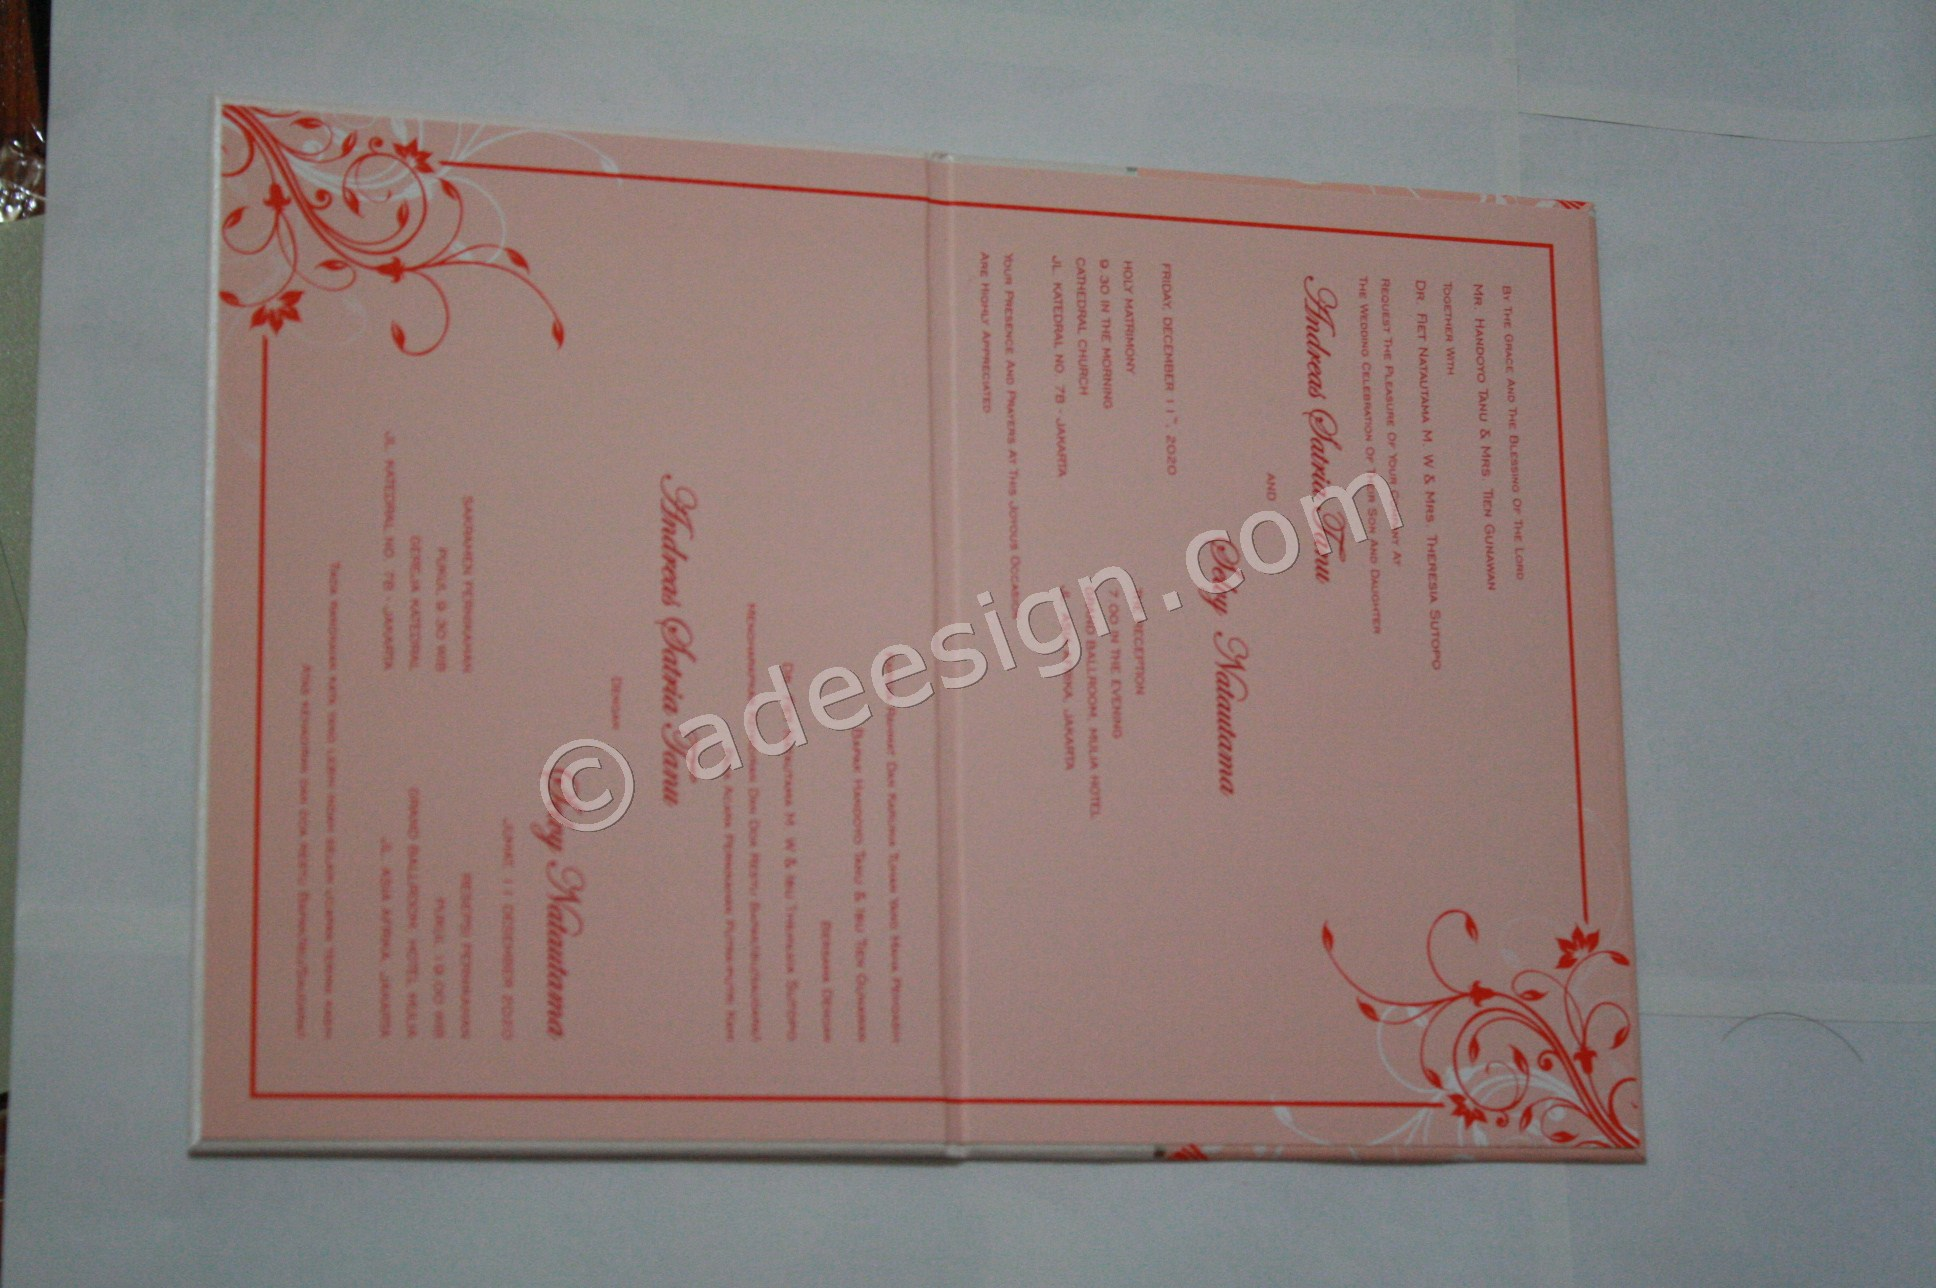 Undangan Pernikahan Hardcover ED63 3 - Percetakan Wedding Invitations Eksklusif di Dukuh Setro